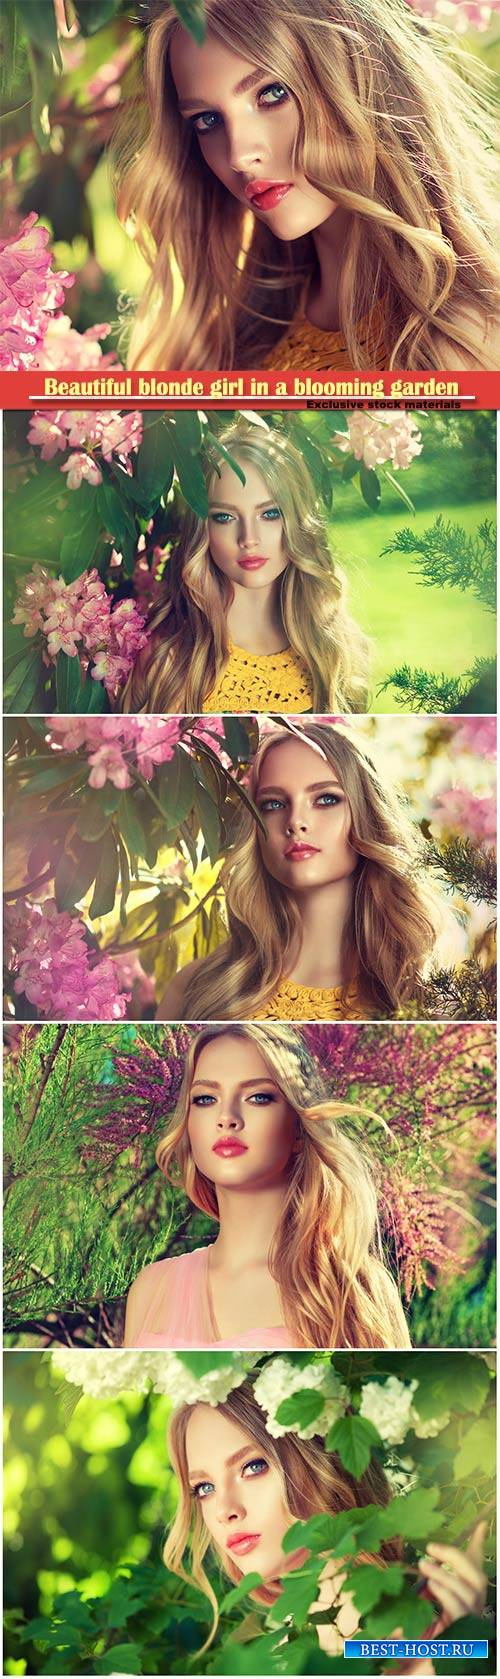 Beautiful blonde girl in a blooming garden